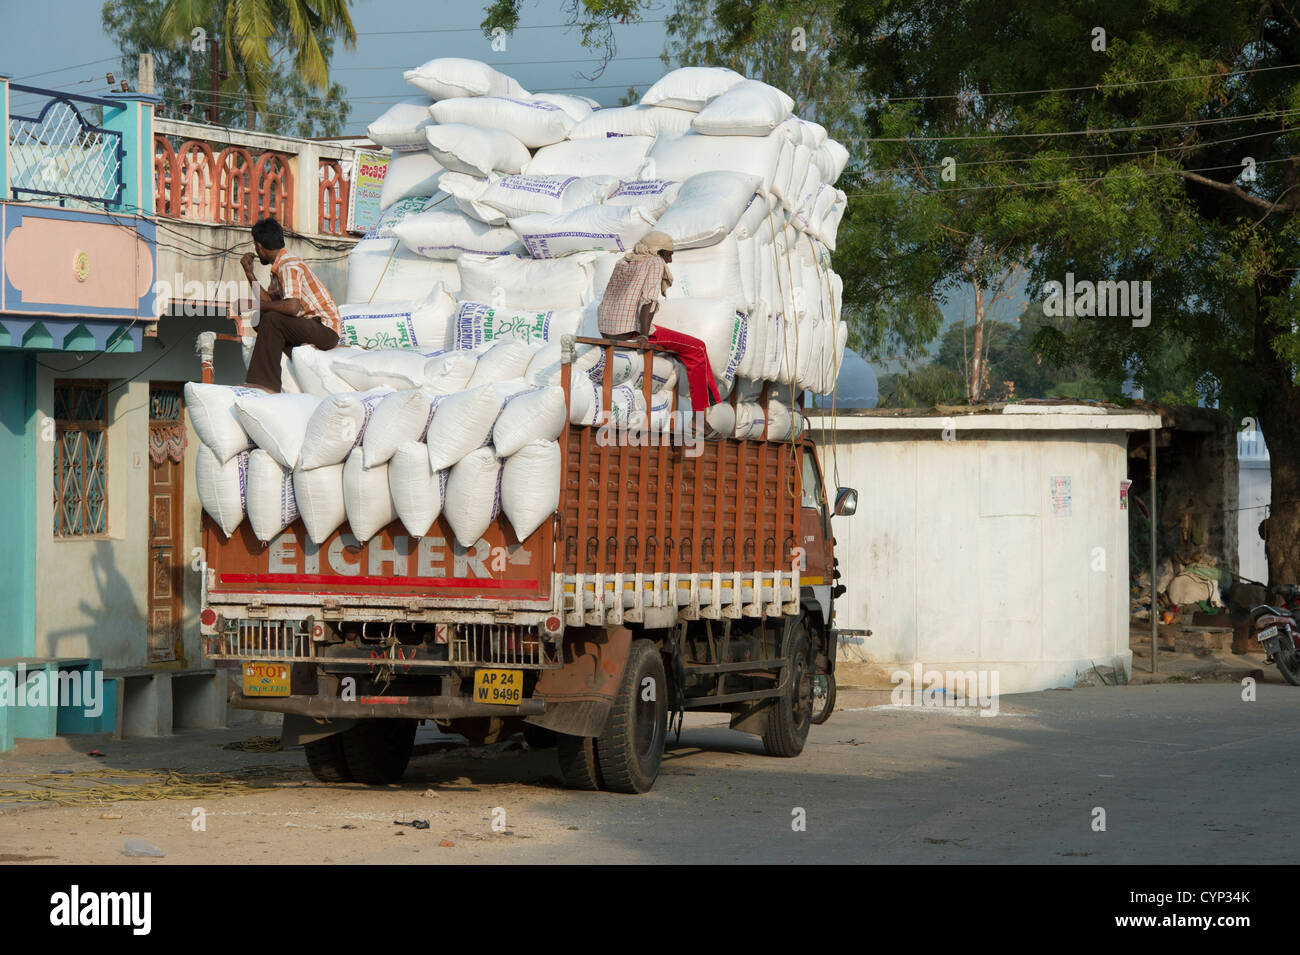 Indian truck overloaded with rice sacks. Andhra Pradesh, India - Stock Image